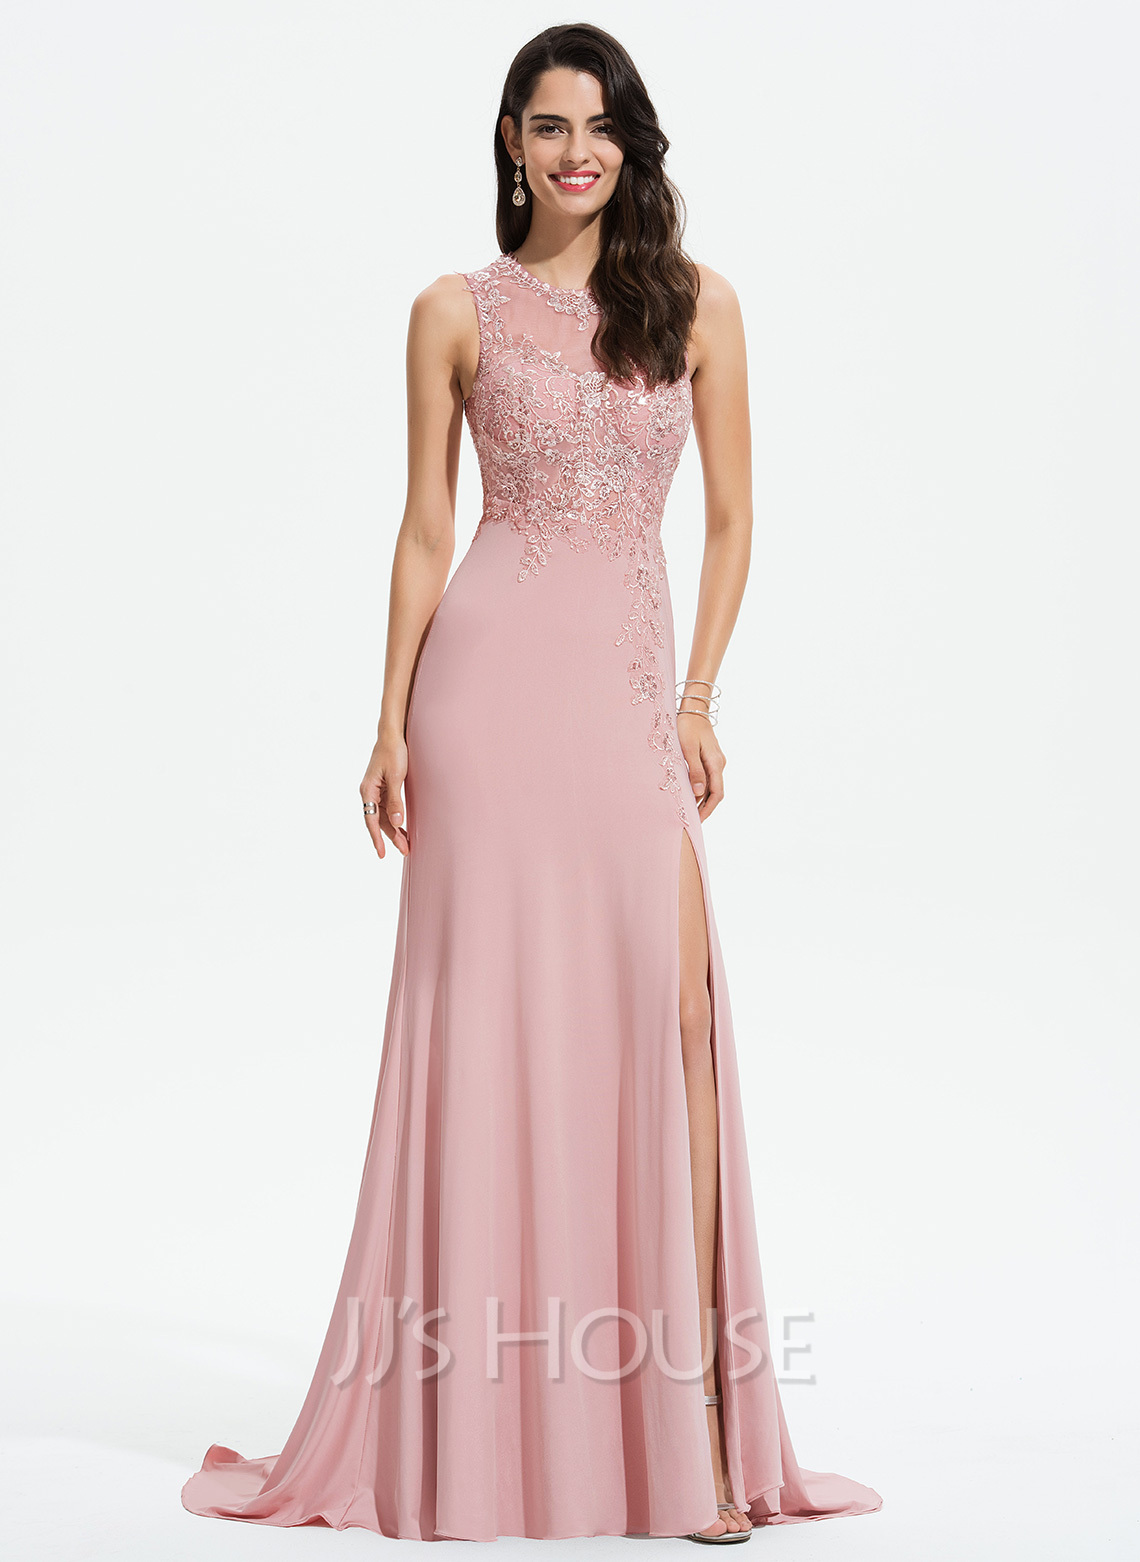 Sheath/Column Scoop Neck Sweep Train Jersey Prom Dresses With Lace Split Front